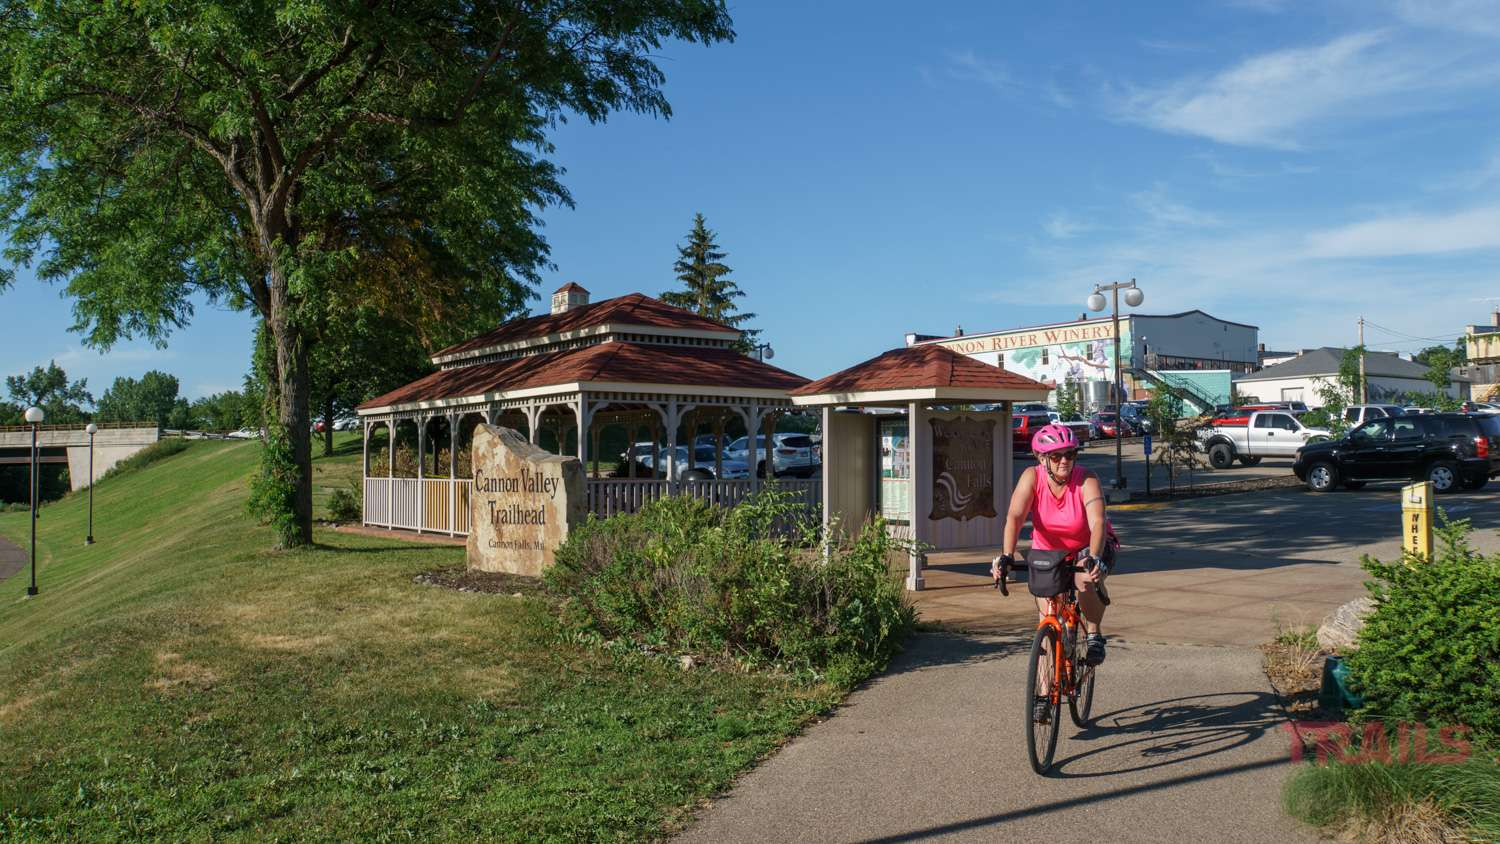 A woman bikes out of a parking lot onto a paved trail